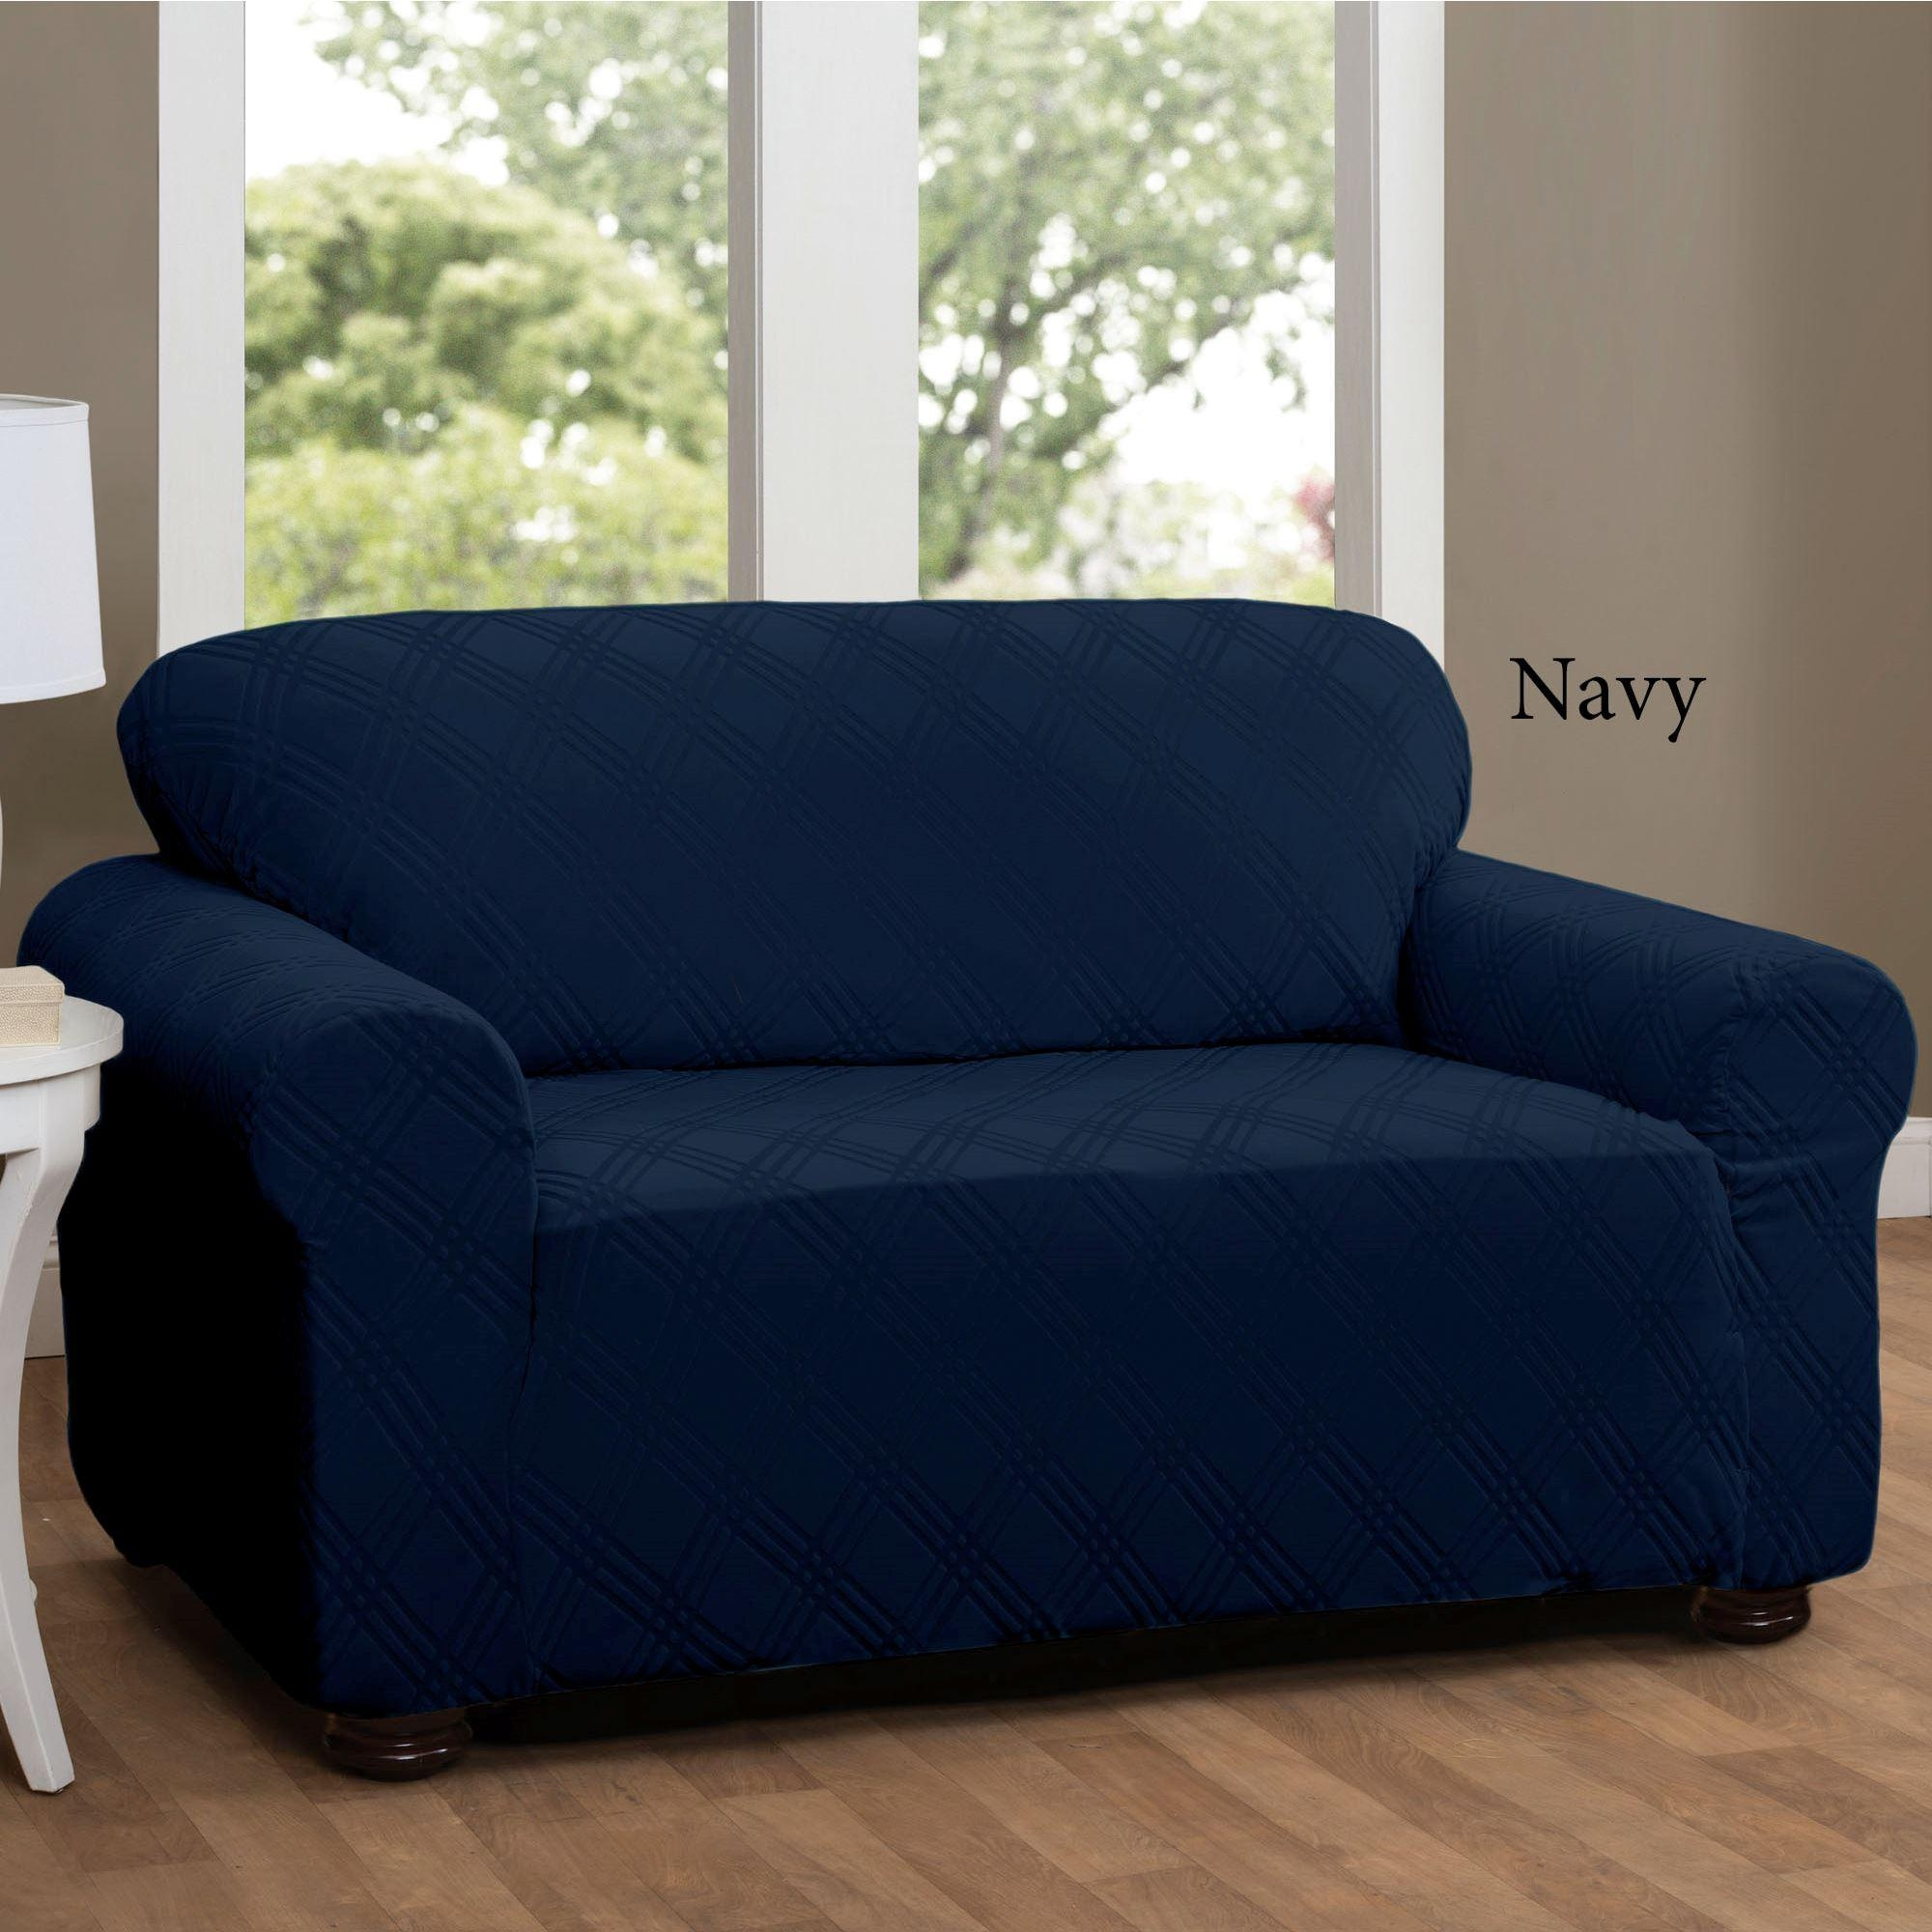 Double Diamond Stretch Loveseat Slipcovers With Regard To Navy Blue Slipcovers (Image 3 of 20)